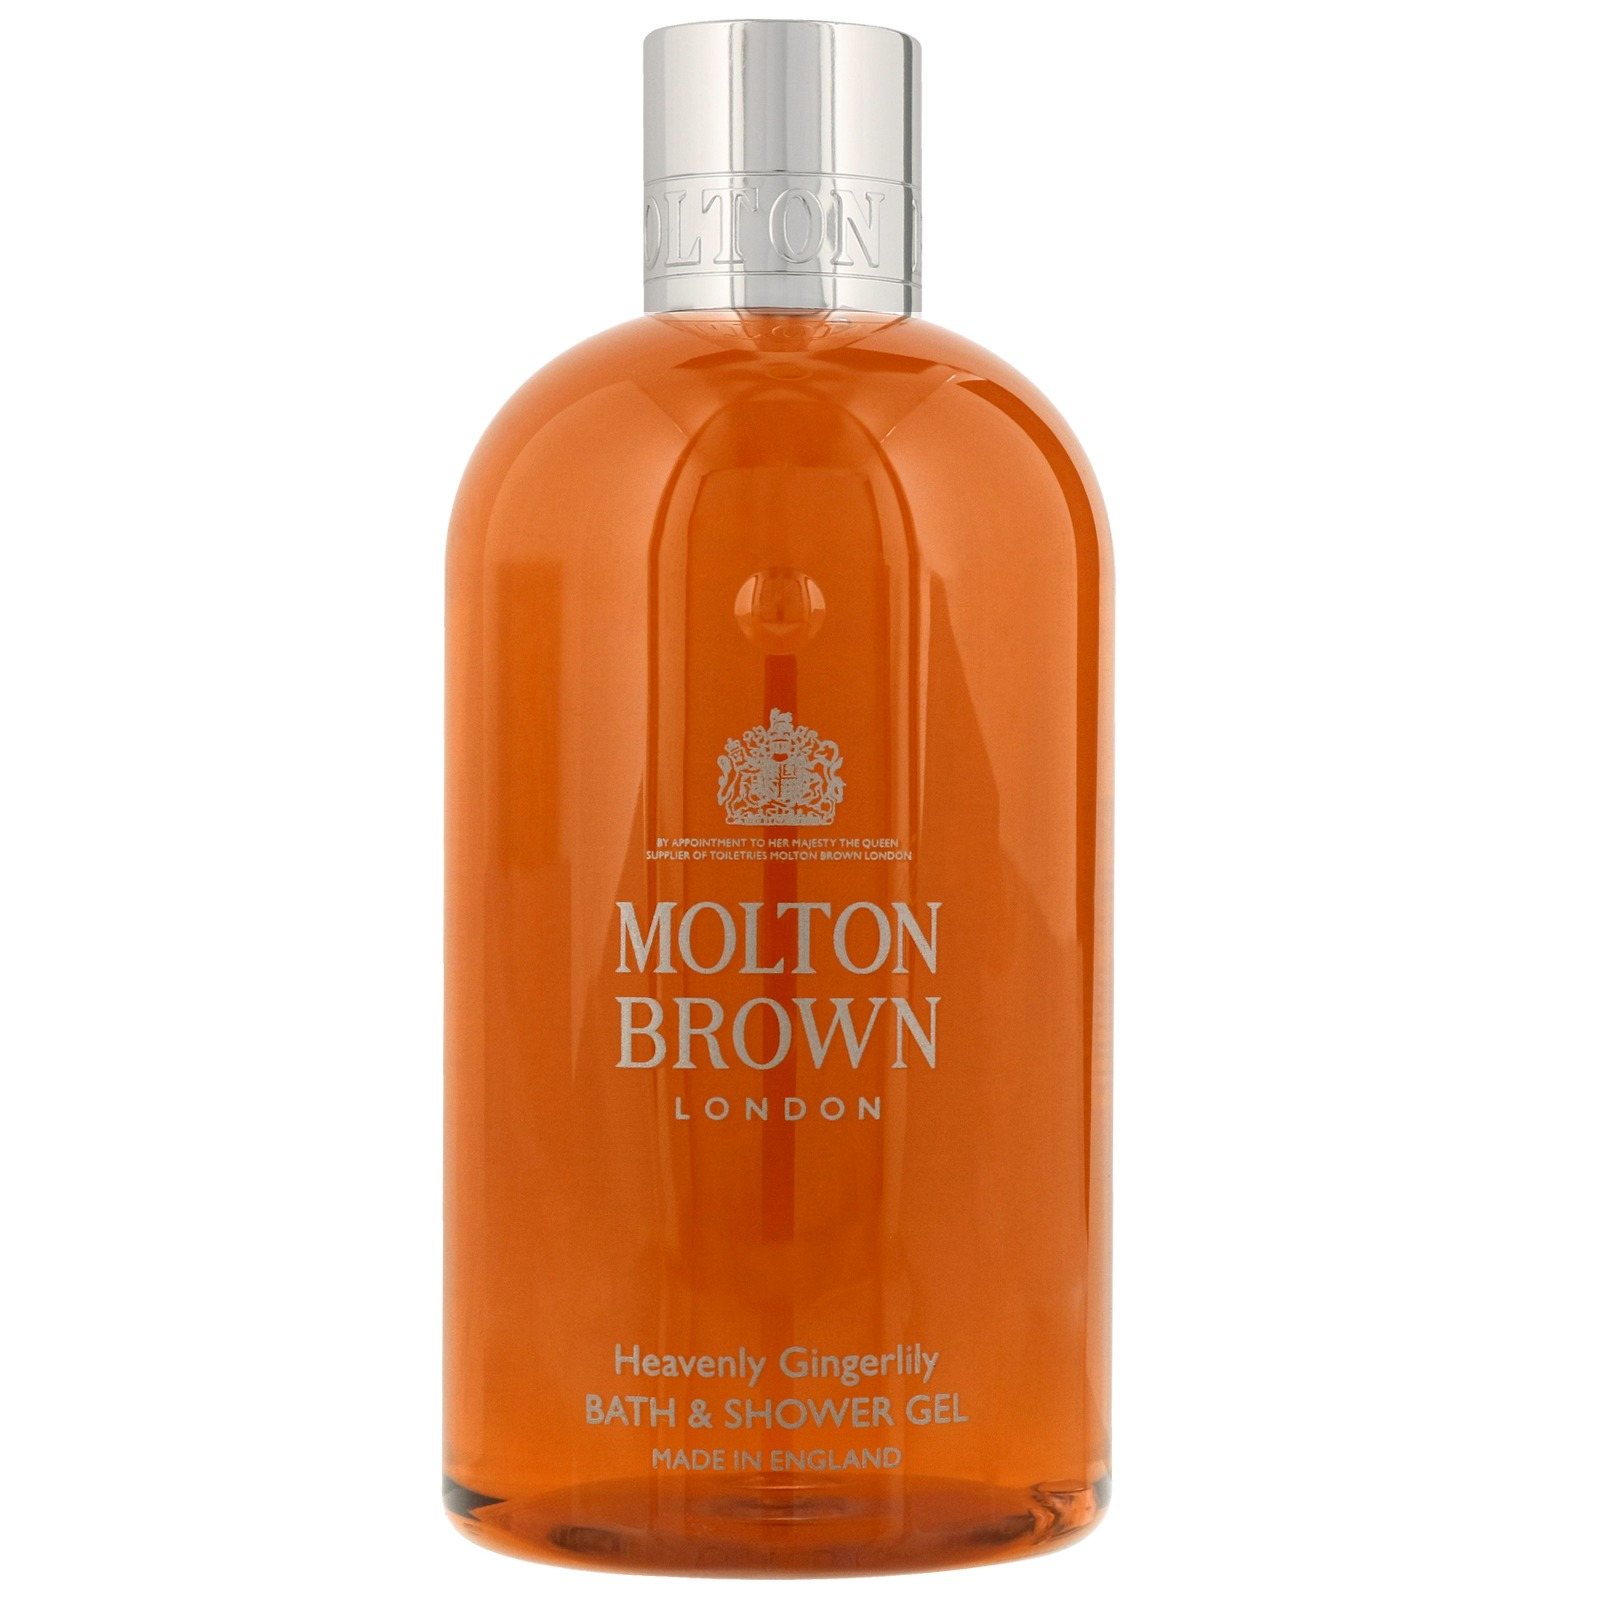 Molton Brown Heavenly Gingerlily Bath & Shower Gel 300ml